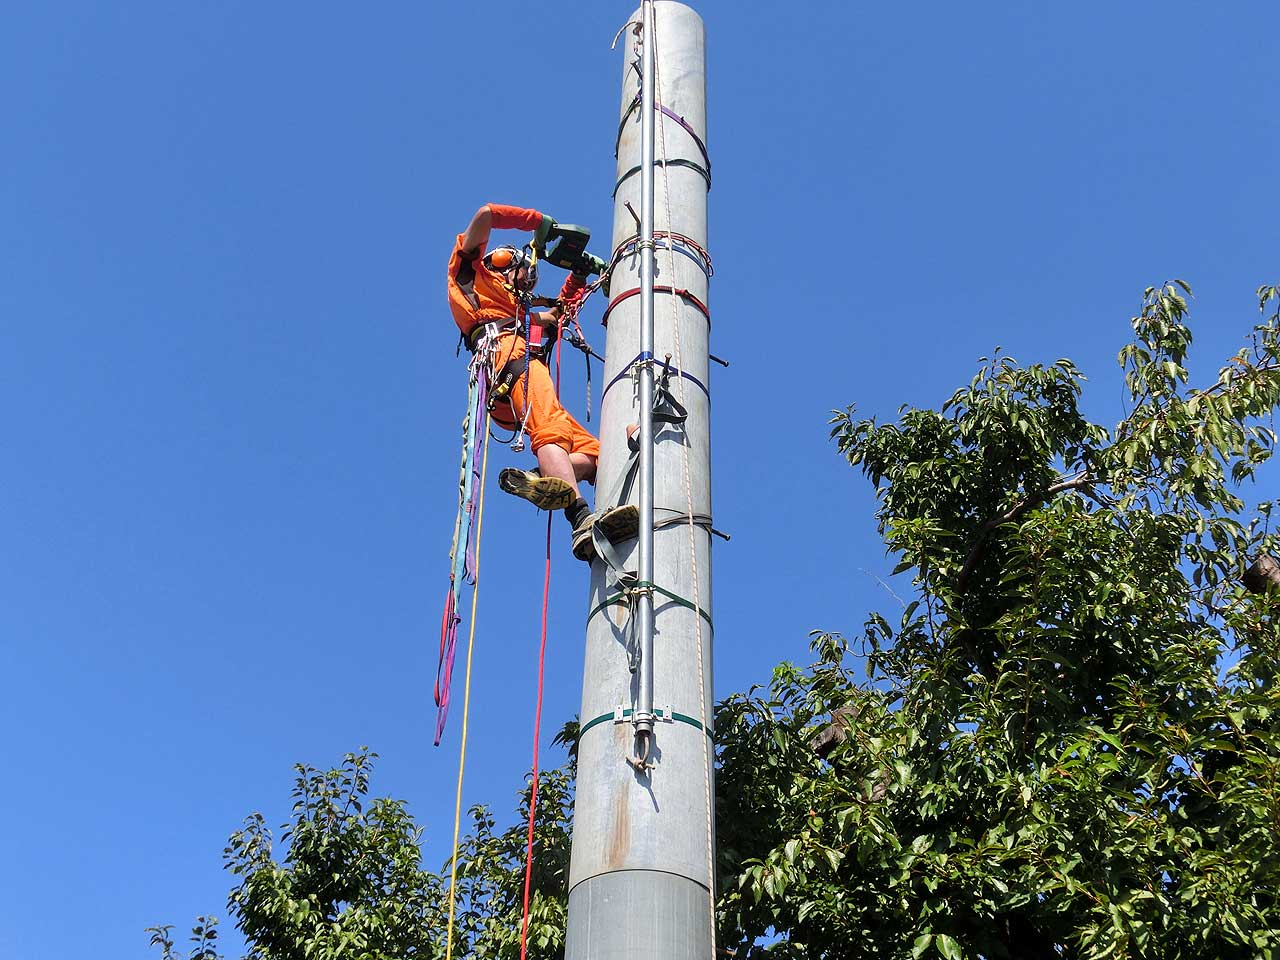 Removal of the antenna tower of amateur radio